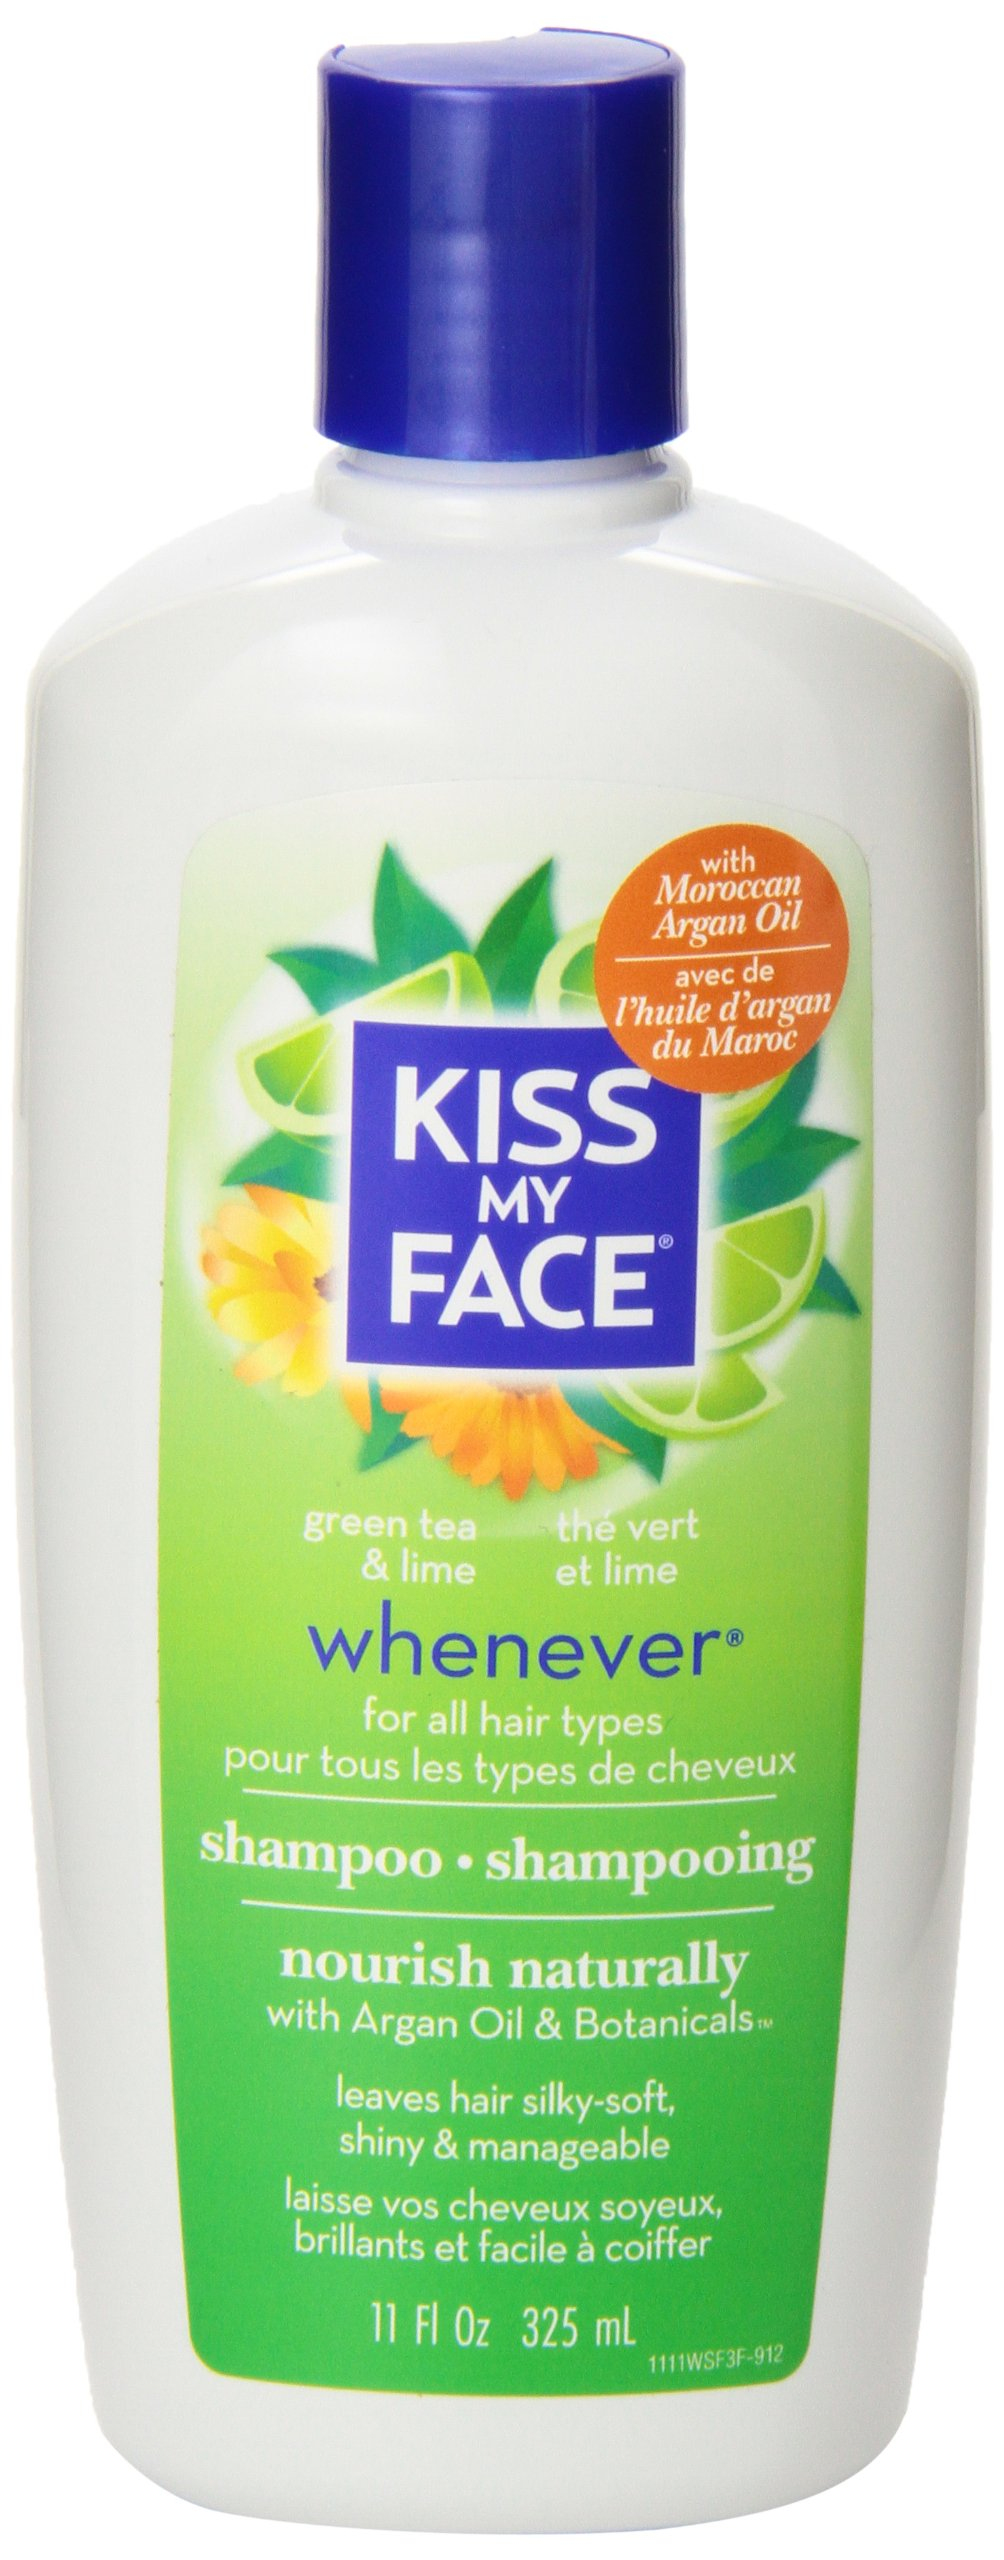 Kiss My Face Whenever Shampoo, Shampoo with Green Tea & Lime, 11 Ounce (Pack of 3) by Kiss My Face (Image #5)